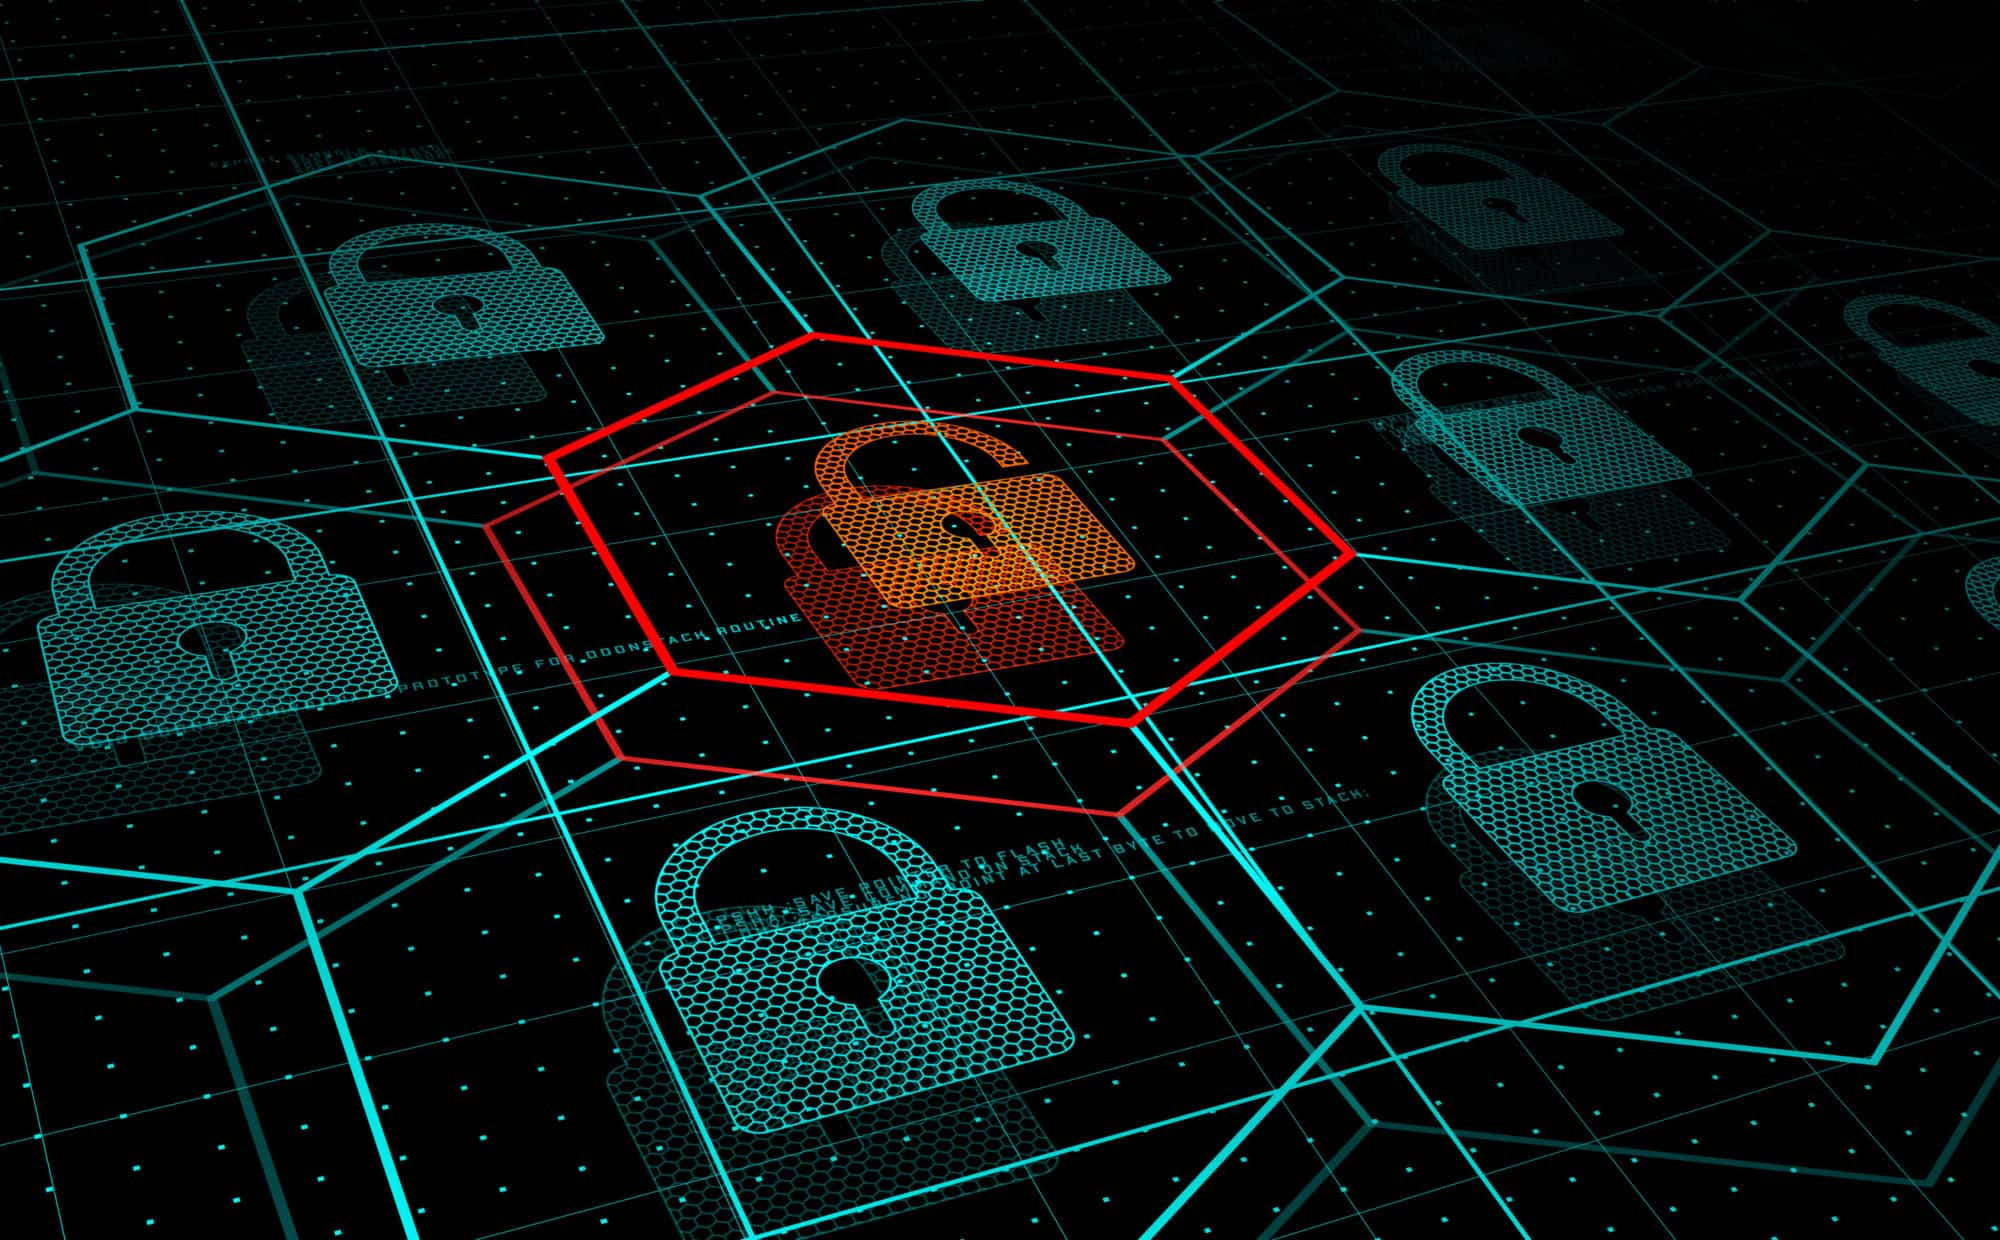 Watch Out for These 5 Emerging Cyber Threats in 2020